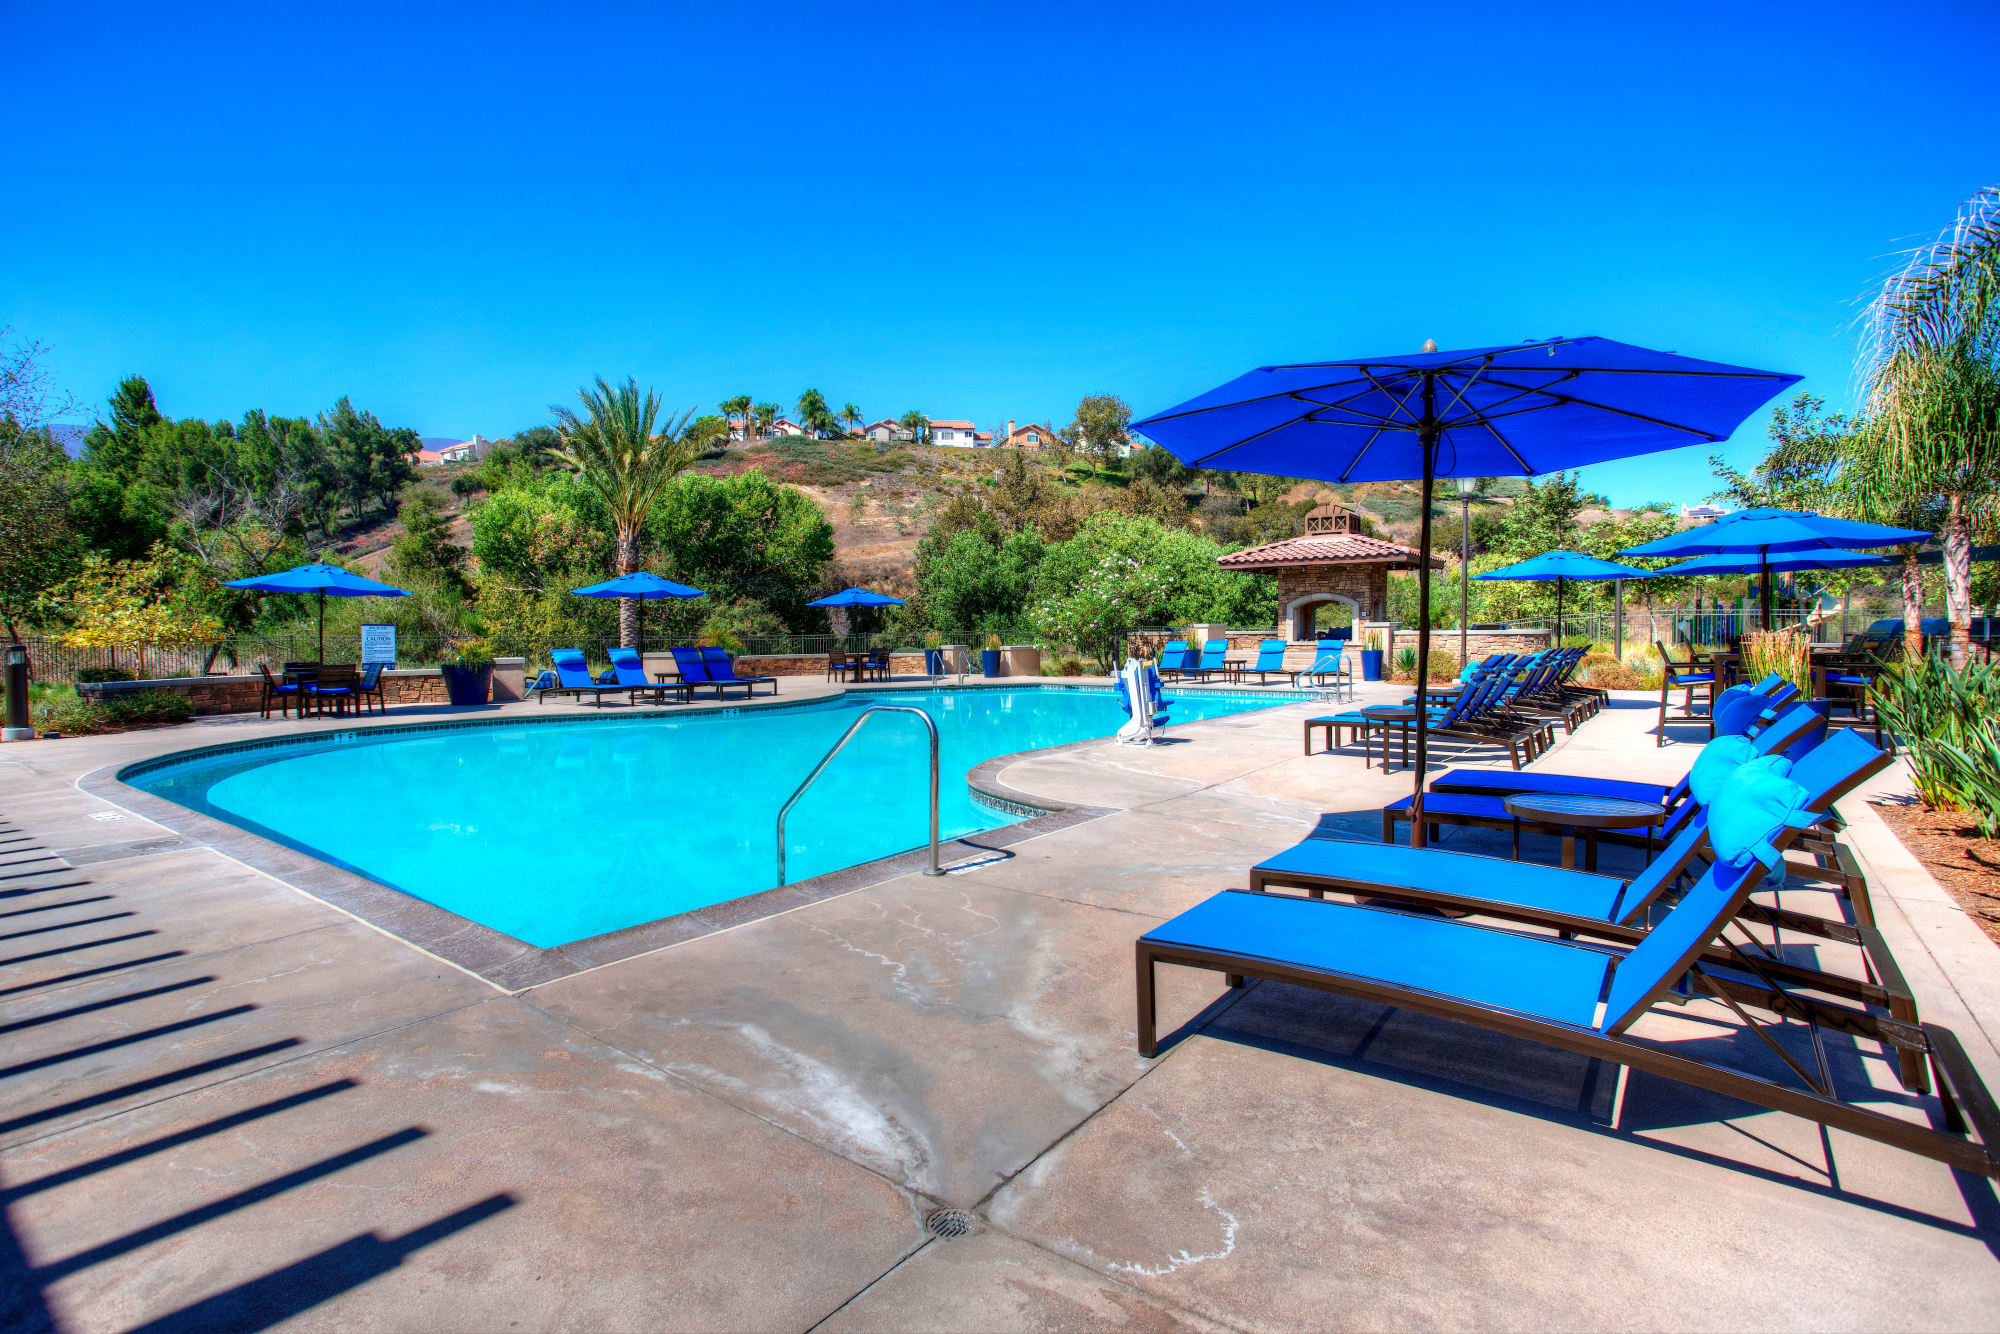 Pool Deck at Palisades Sierra Del Oro